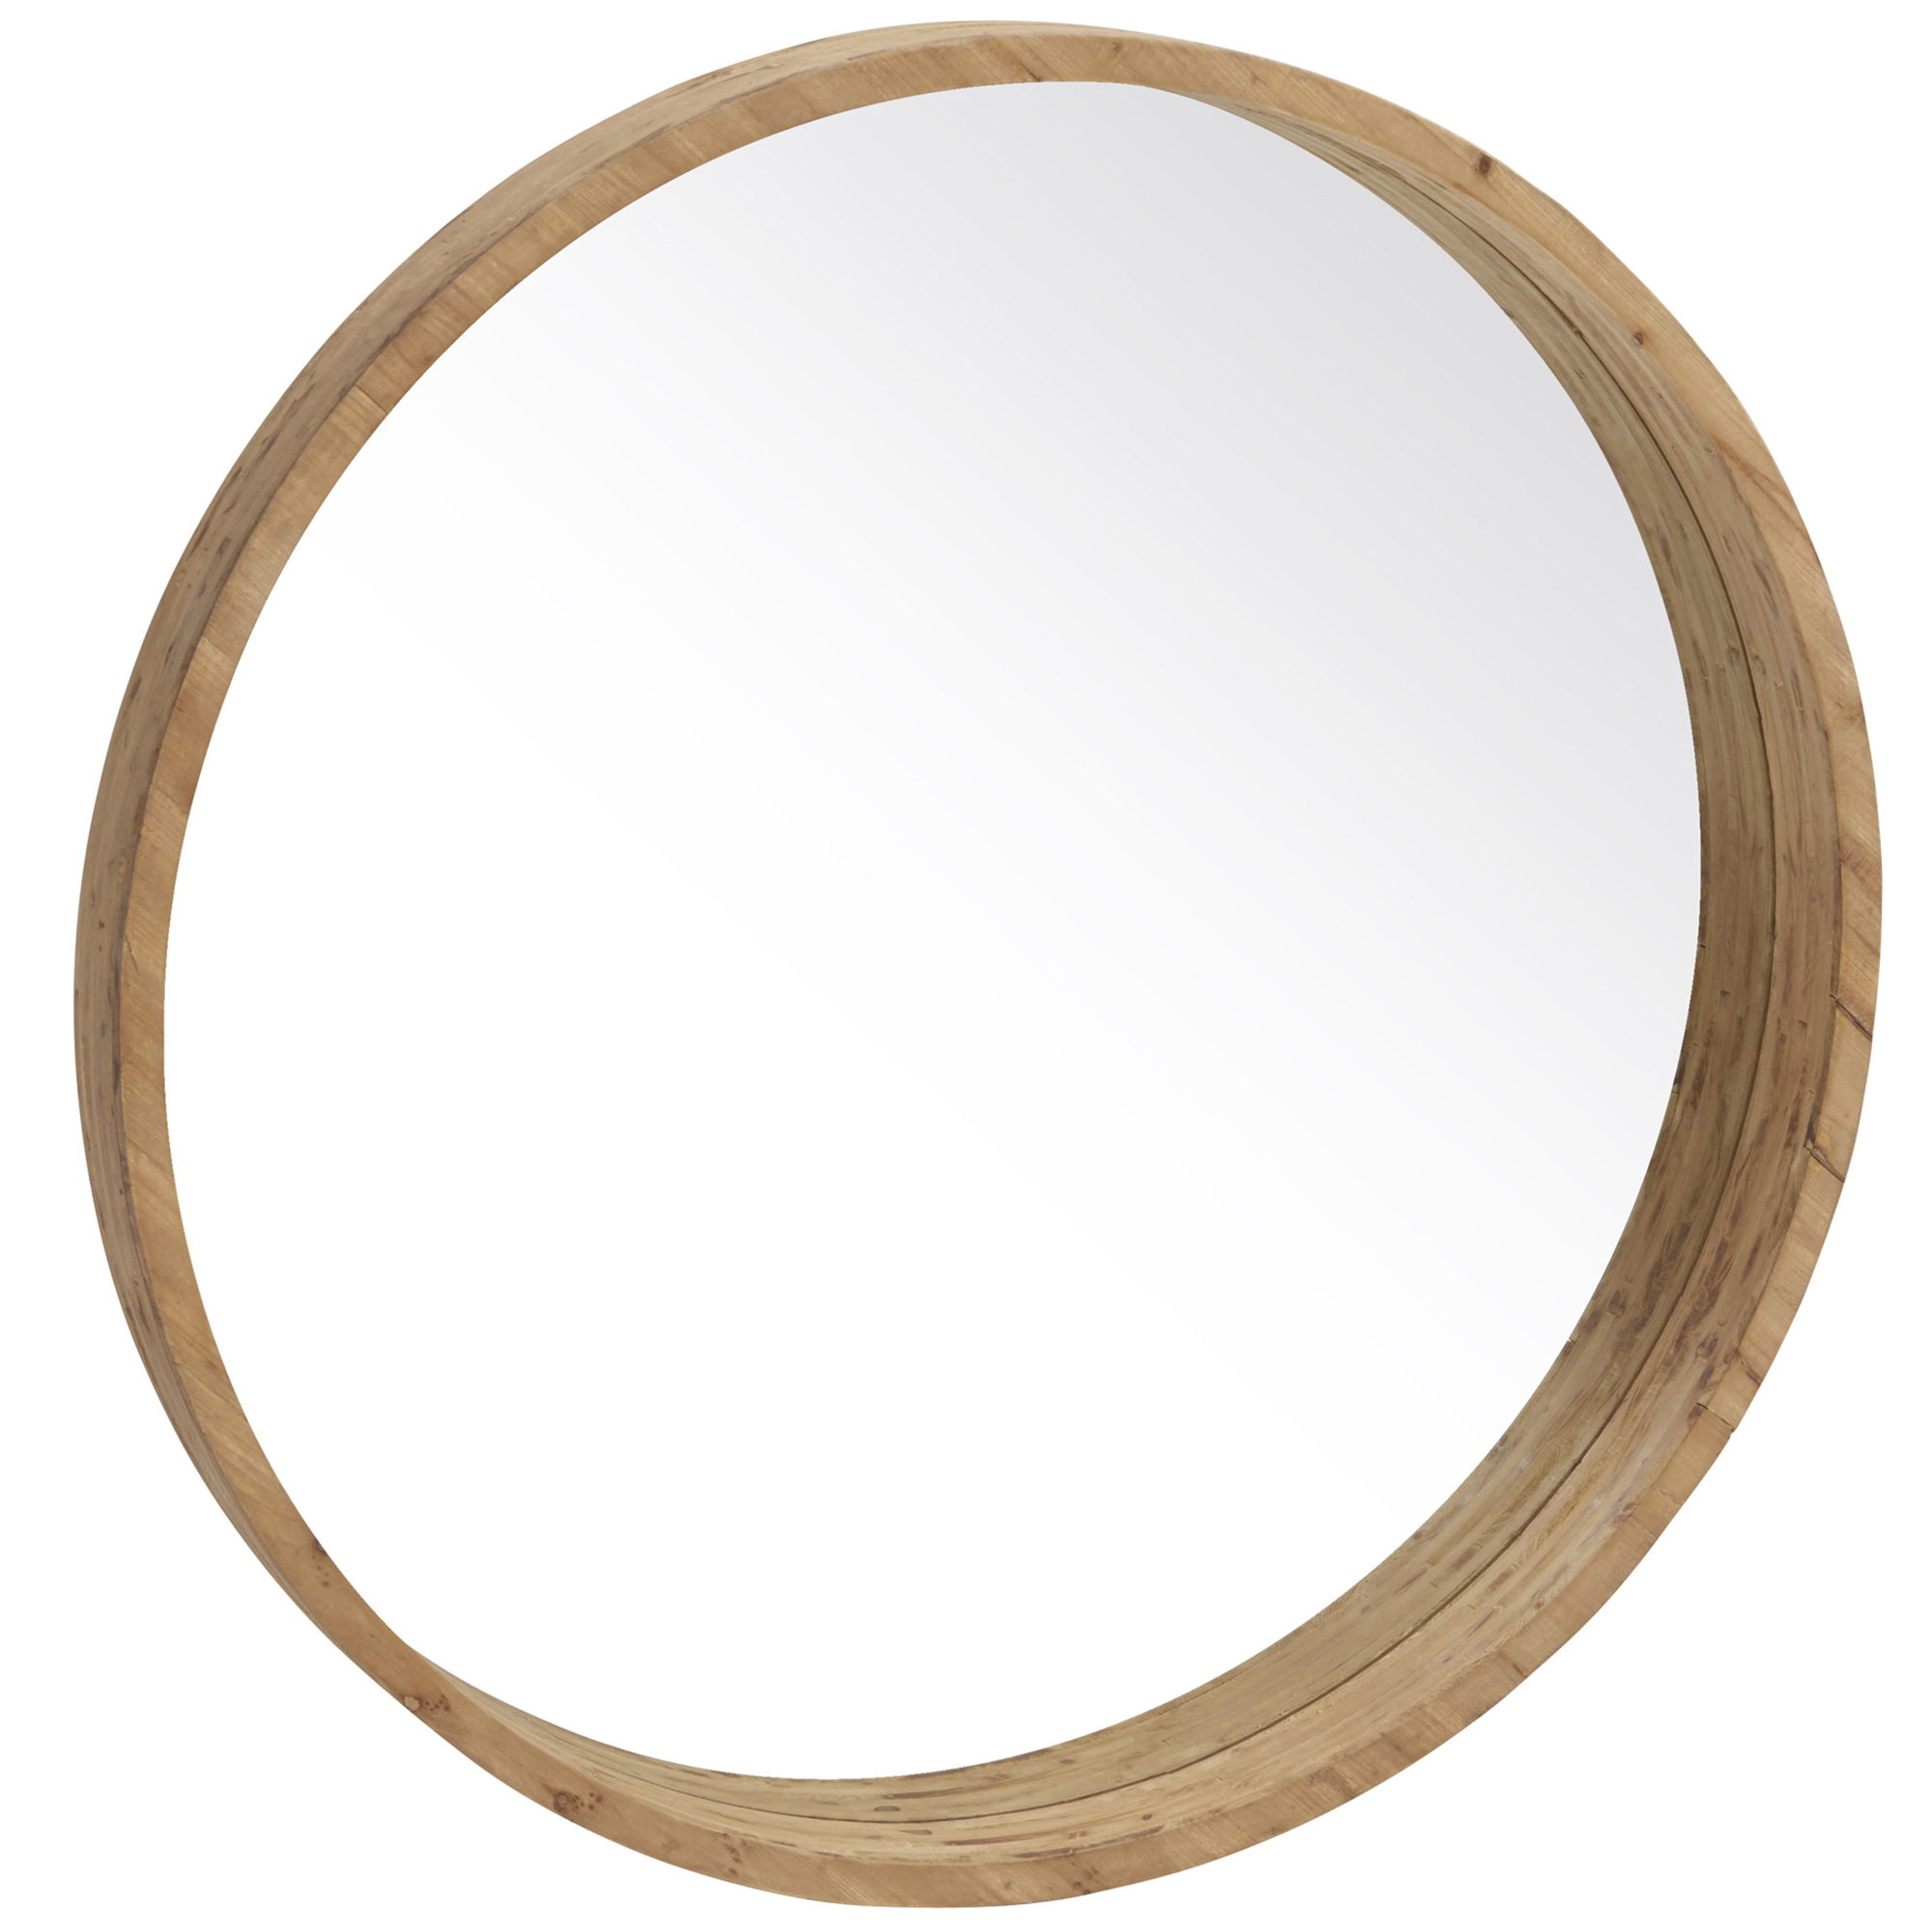 Colton Round Wooden Mirror with regard to Colton Modern & Contemporary Wall Mirrors (Image 9 of 30)